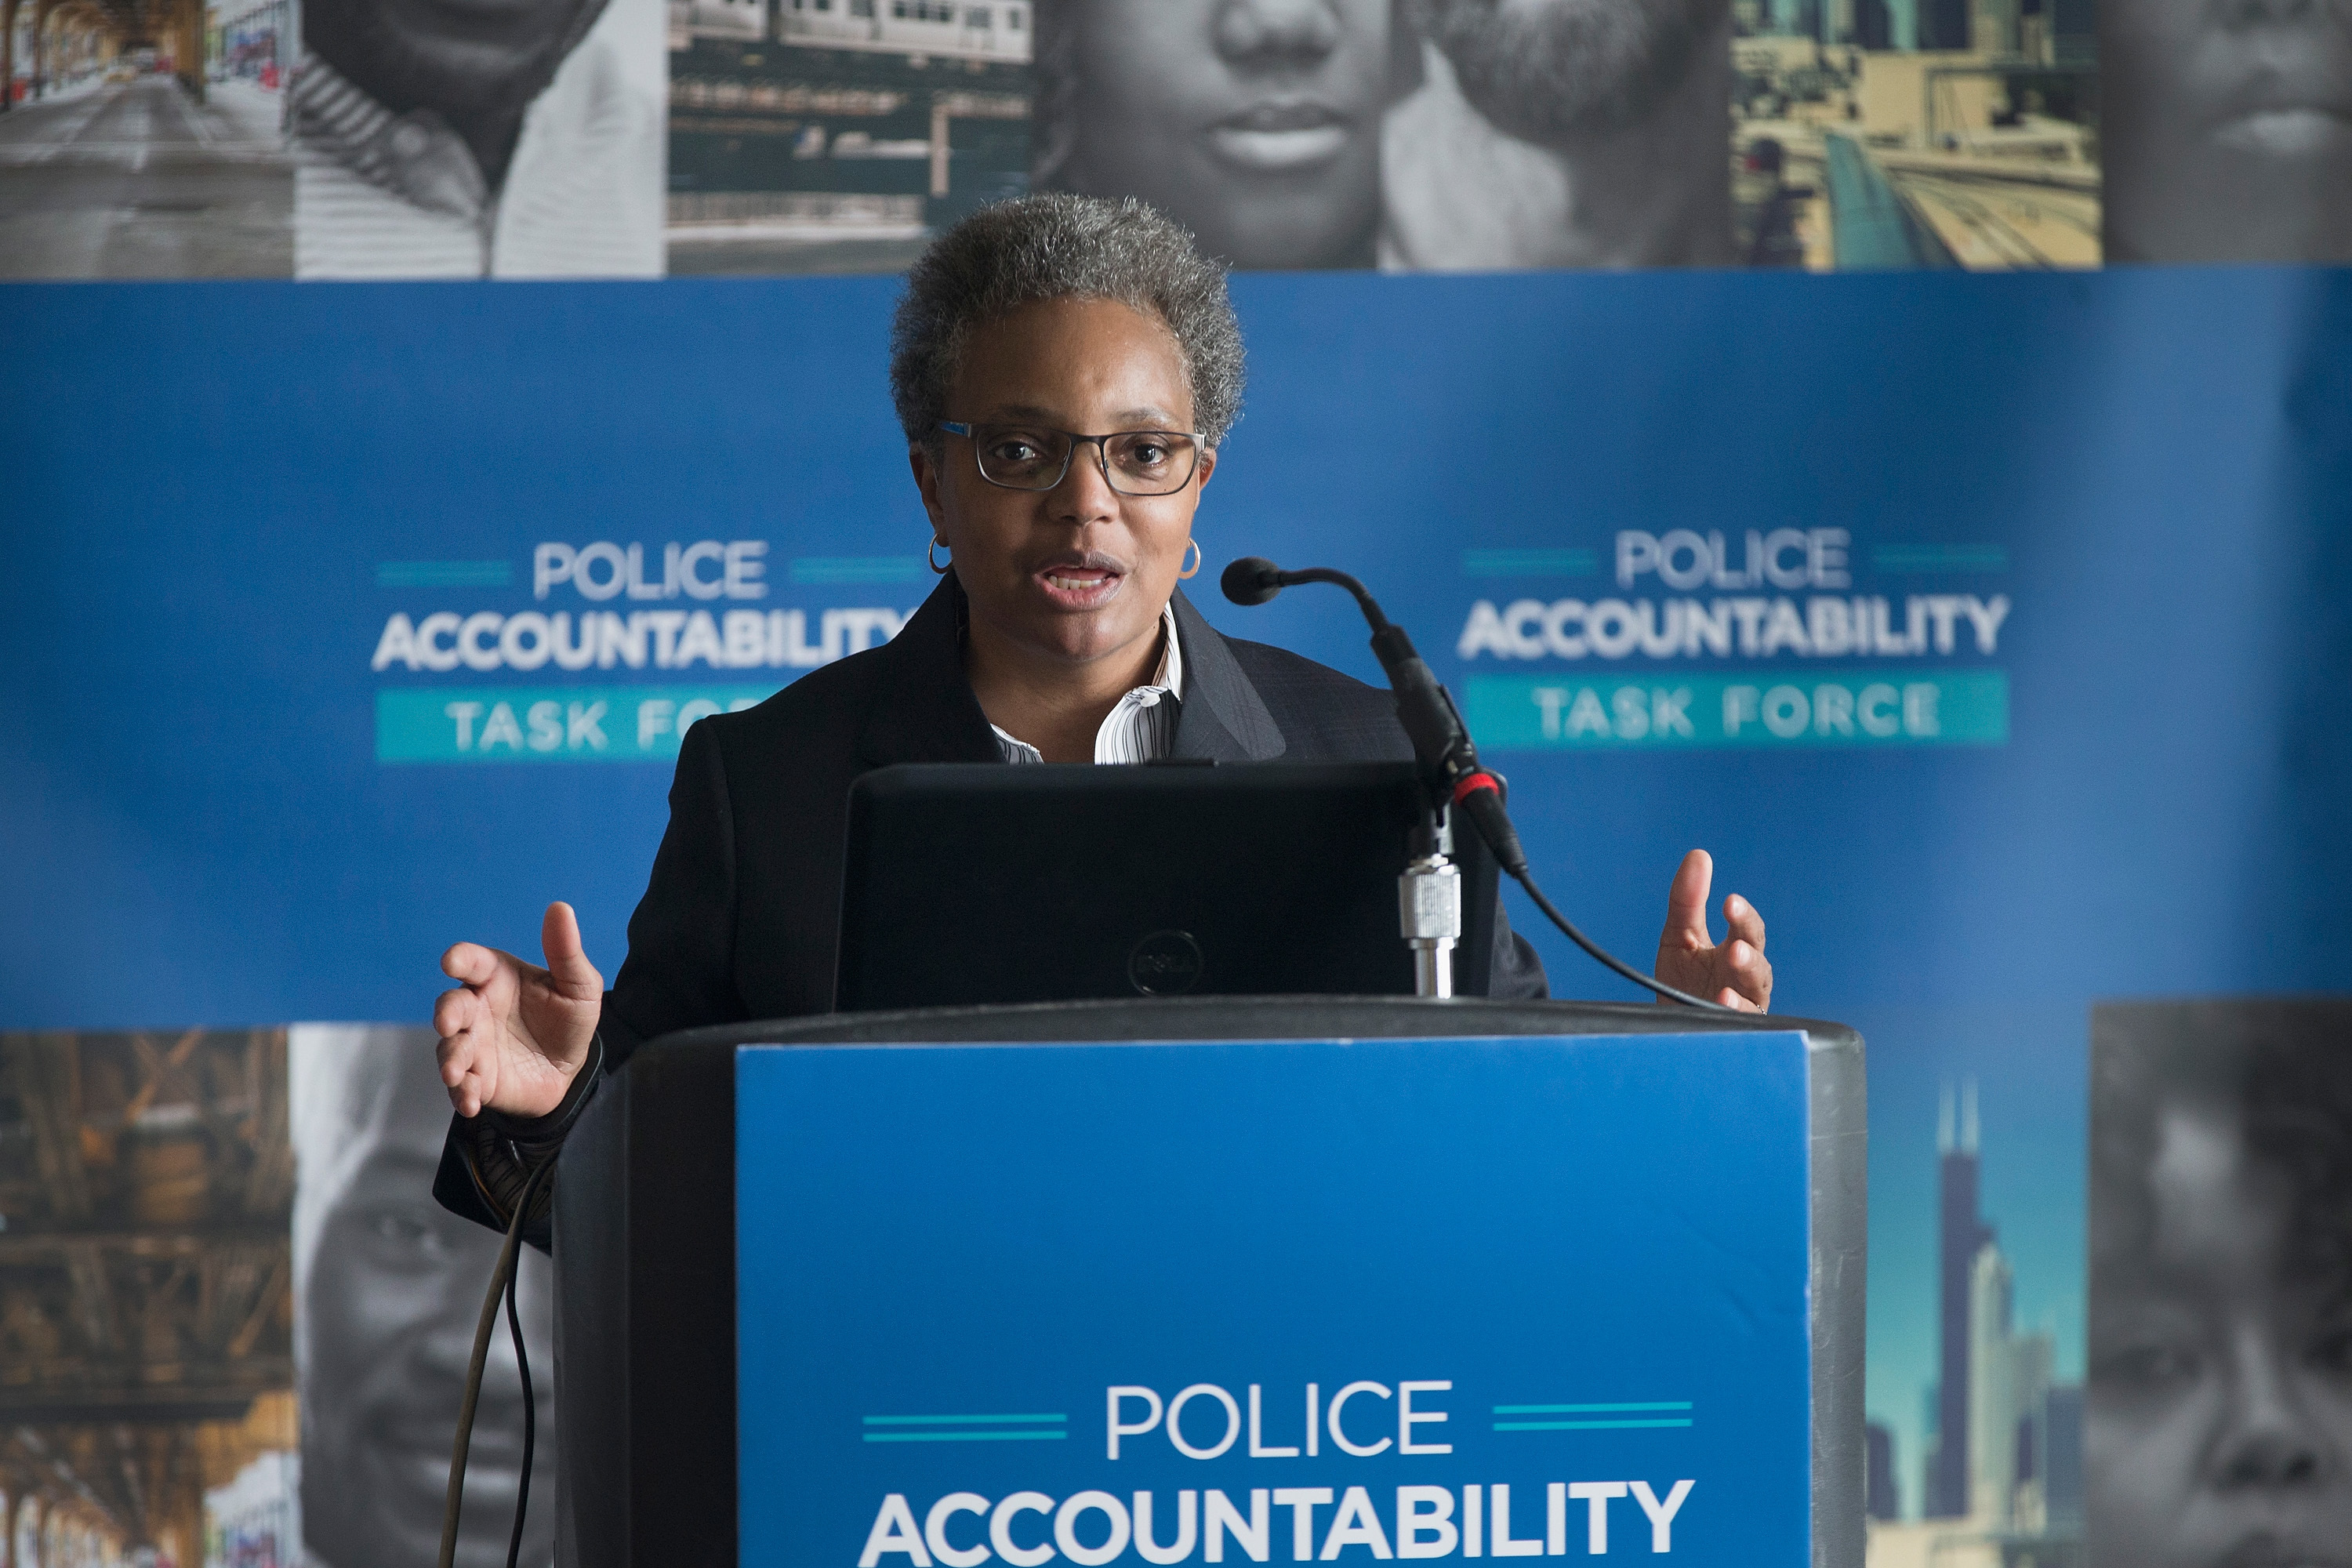 Lori Lightfoot, chair of the Chicago Police Board, addresses community leaders and members of the news media about the findings of the Police Accountability Task Force on April 13, 2016 in Chicago, Illinois.